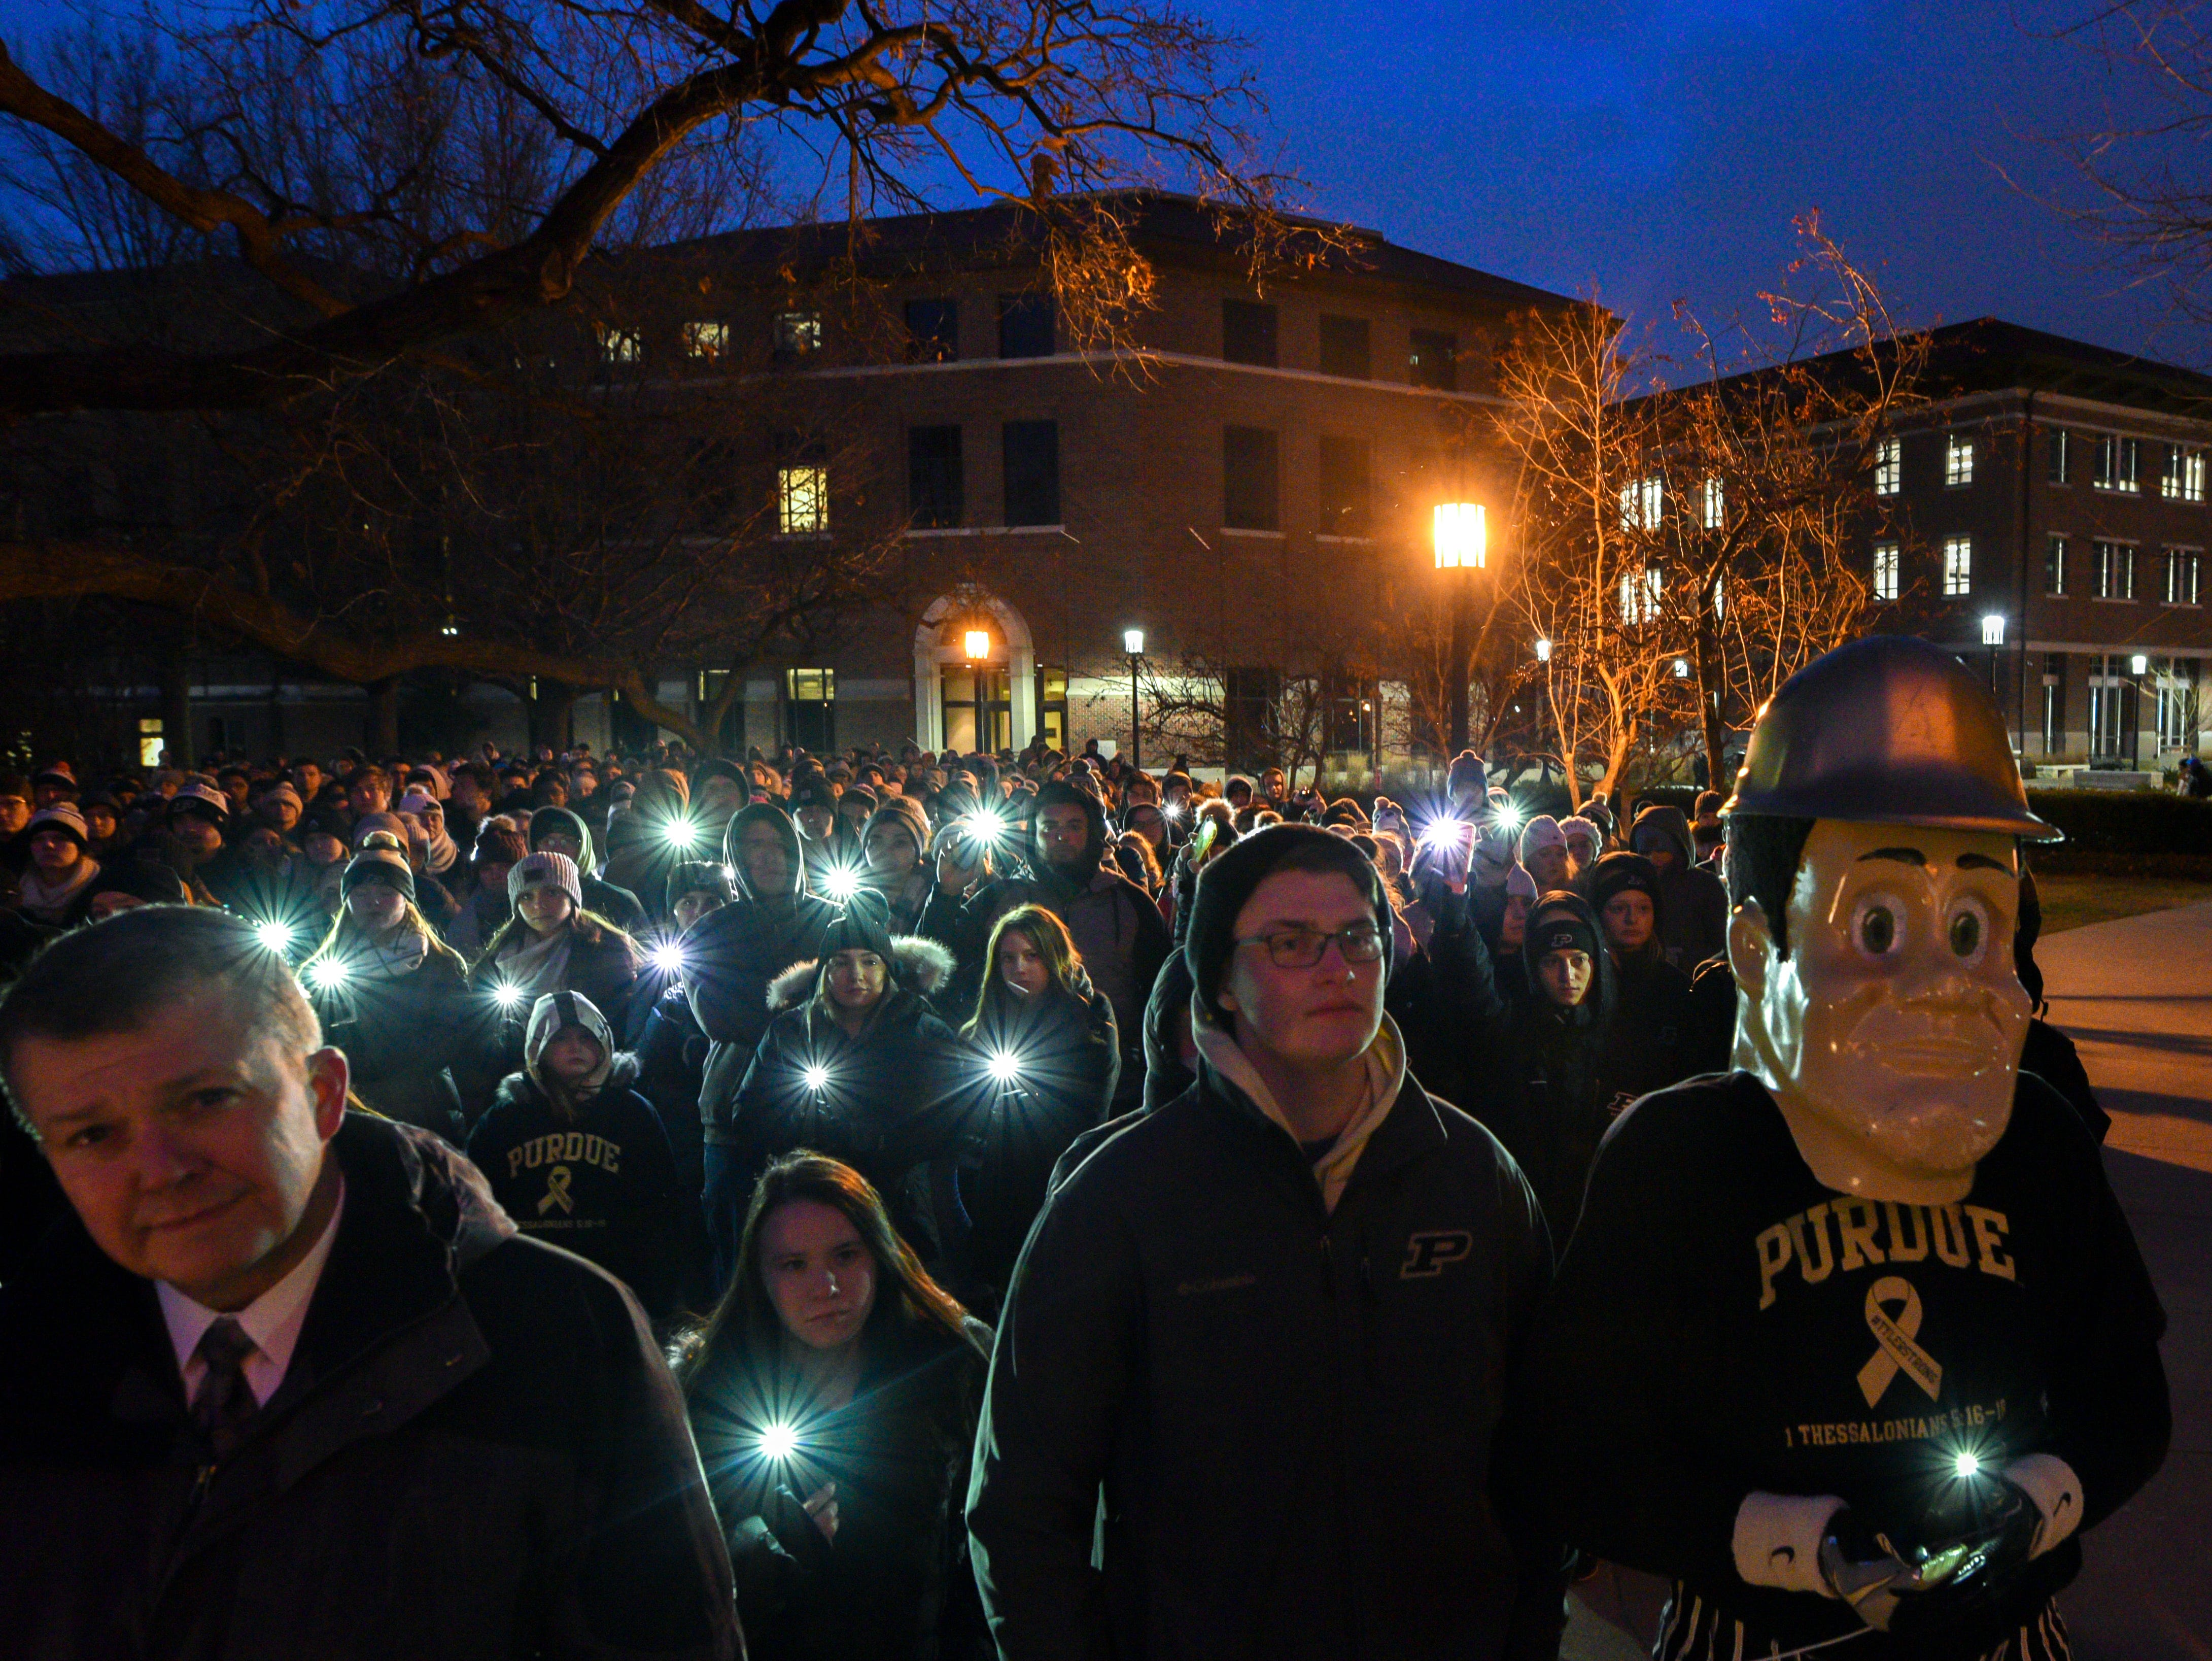 With the wind preventing most candles from staying lighted people used cell phone flashlights at a memorial service and candlelight vigil for Tyler Trent at Purdue University in West Lafayette on January 9, 2019.